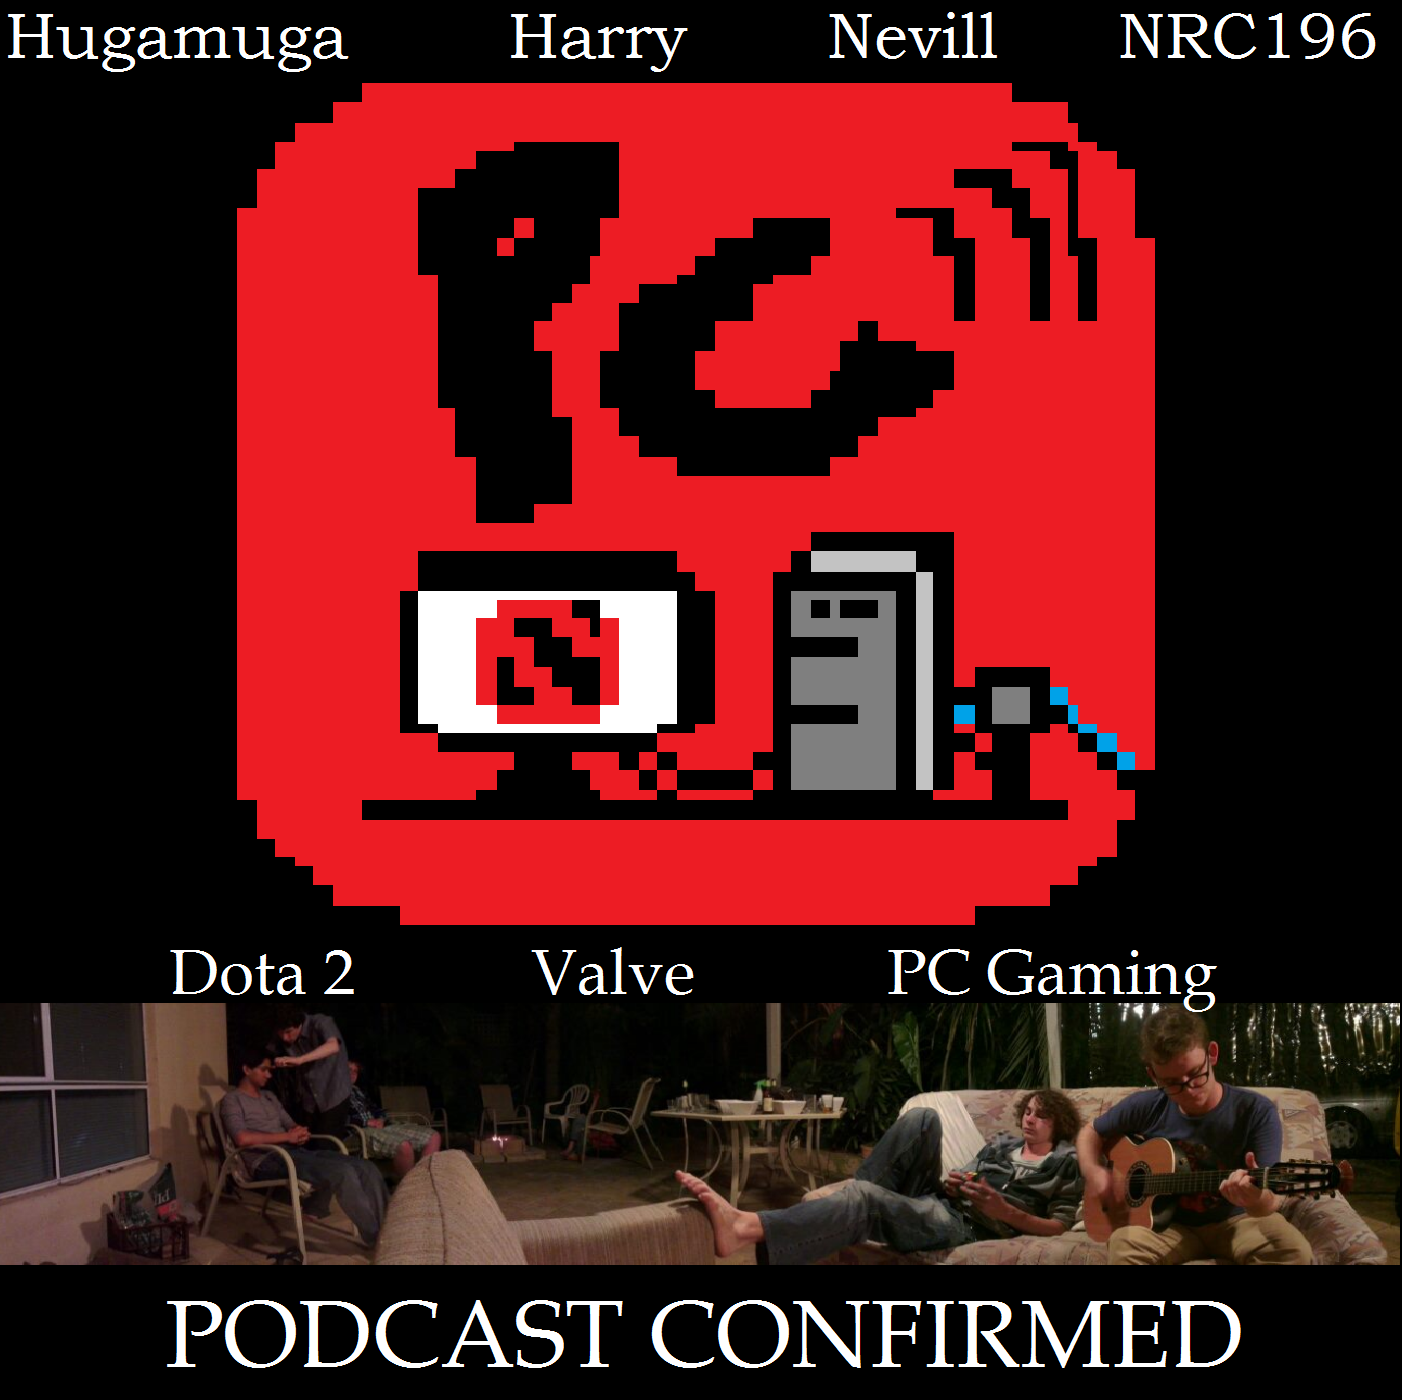 Podcast Confirmed